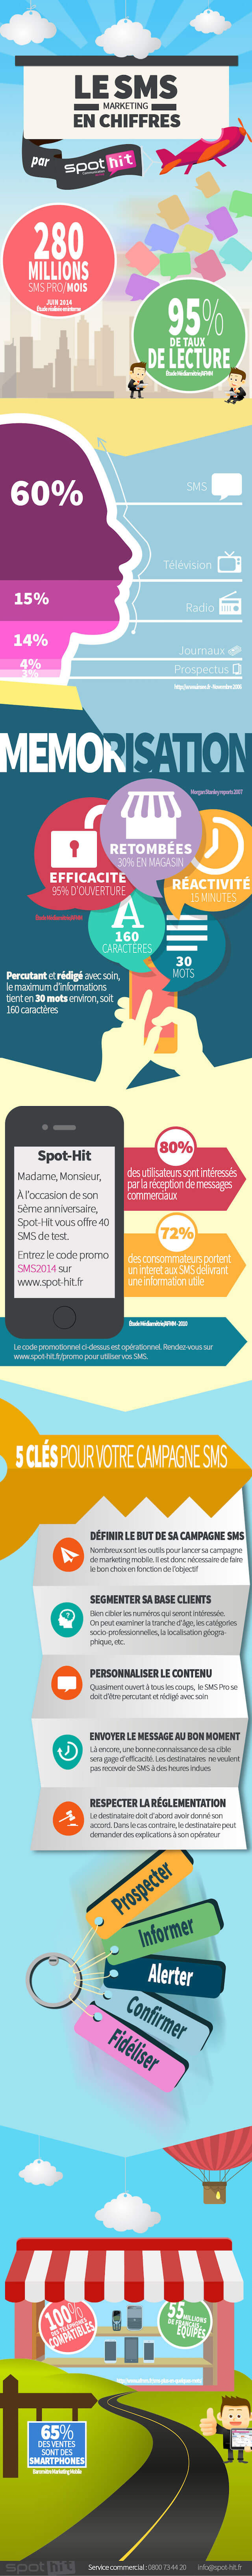 infographie sms marketing professionnel